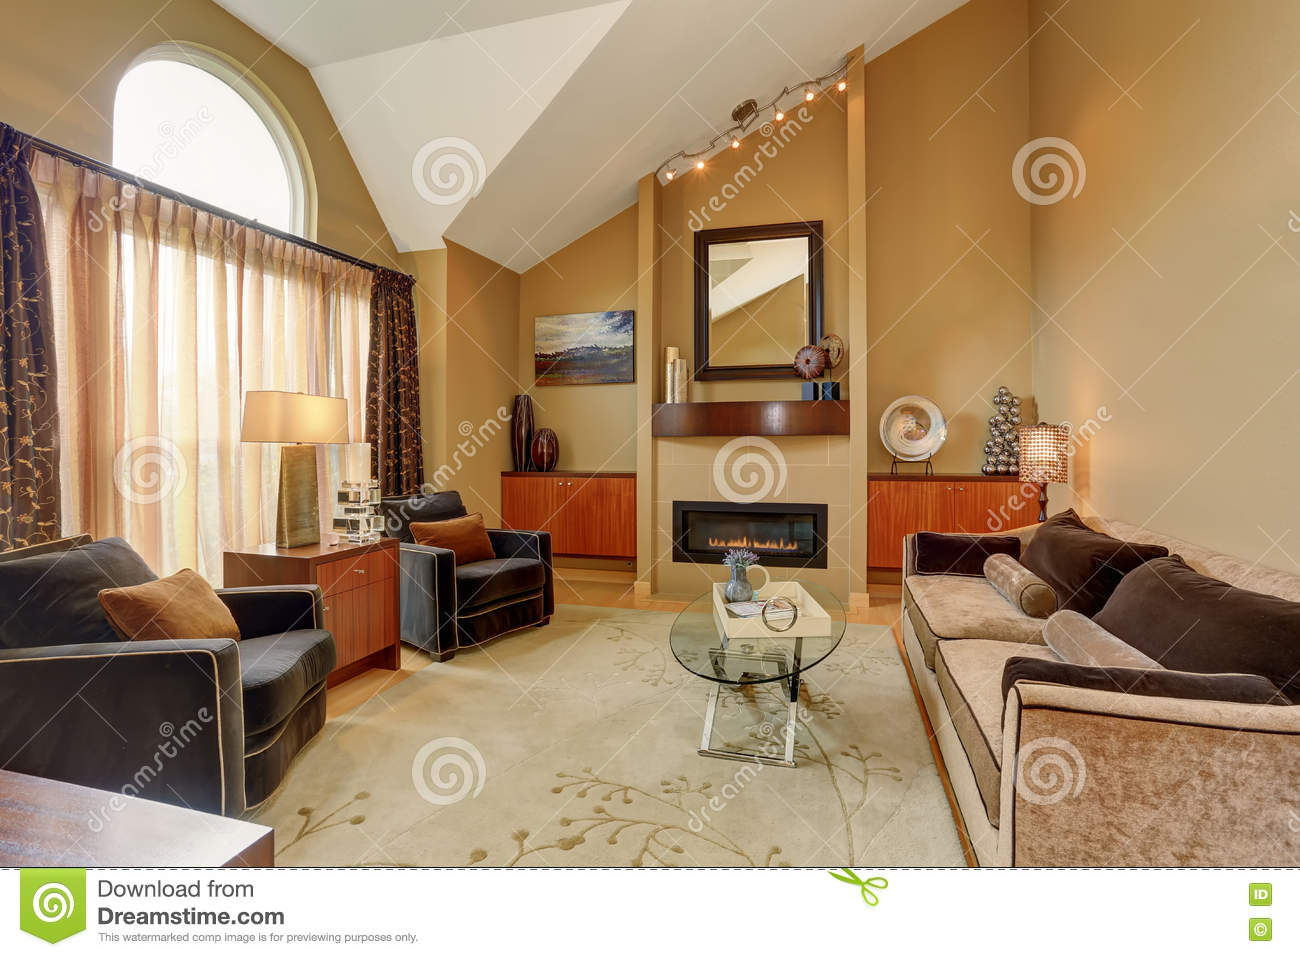 beau salon brun et beige avec le plafond vo t image stock. Black Bedroom Furniture Sets. Home Design Ideas